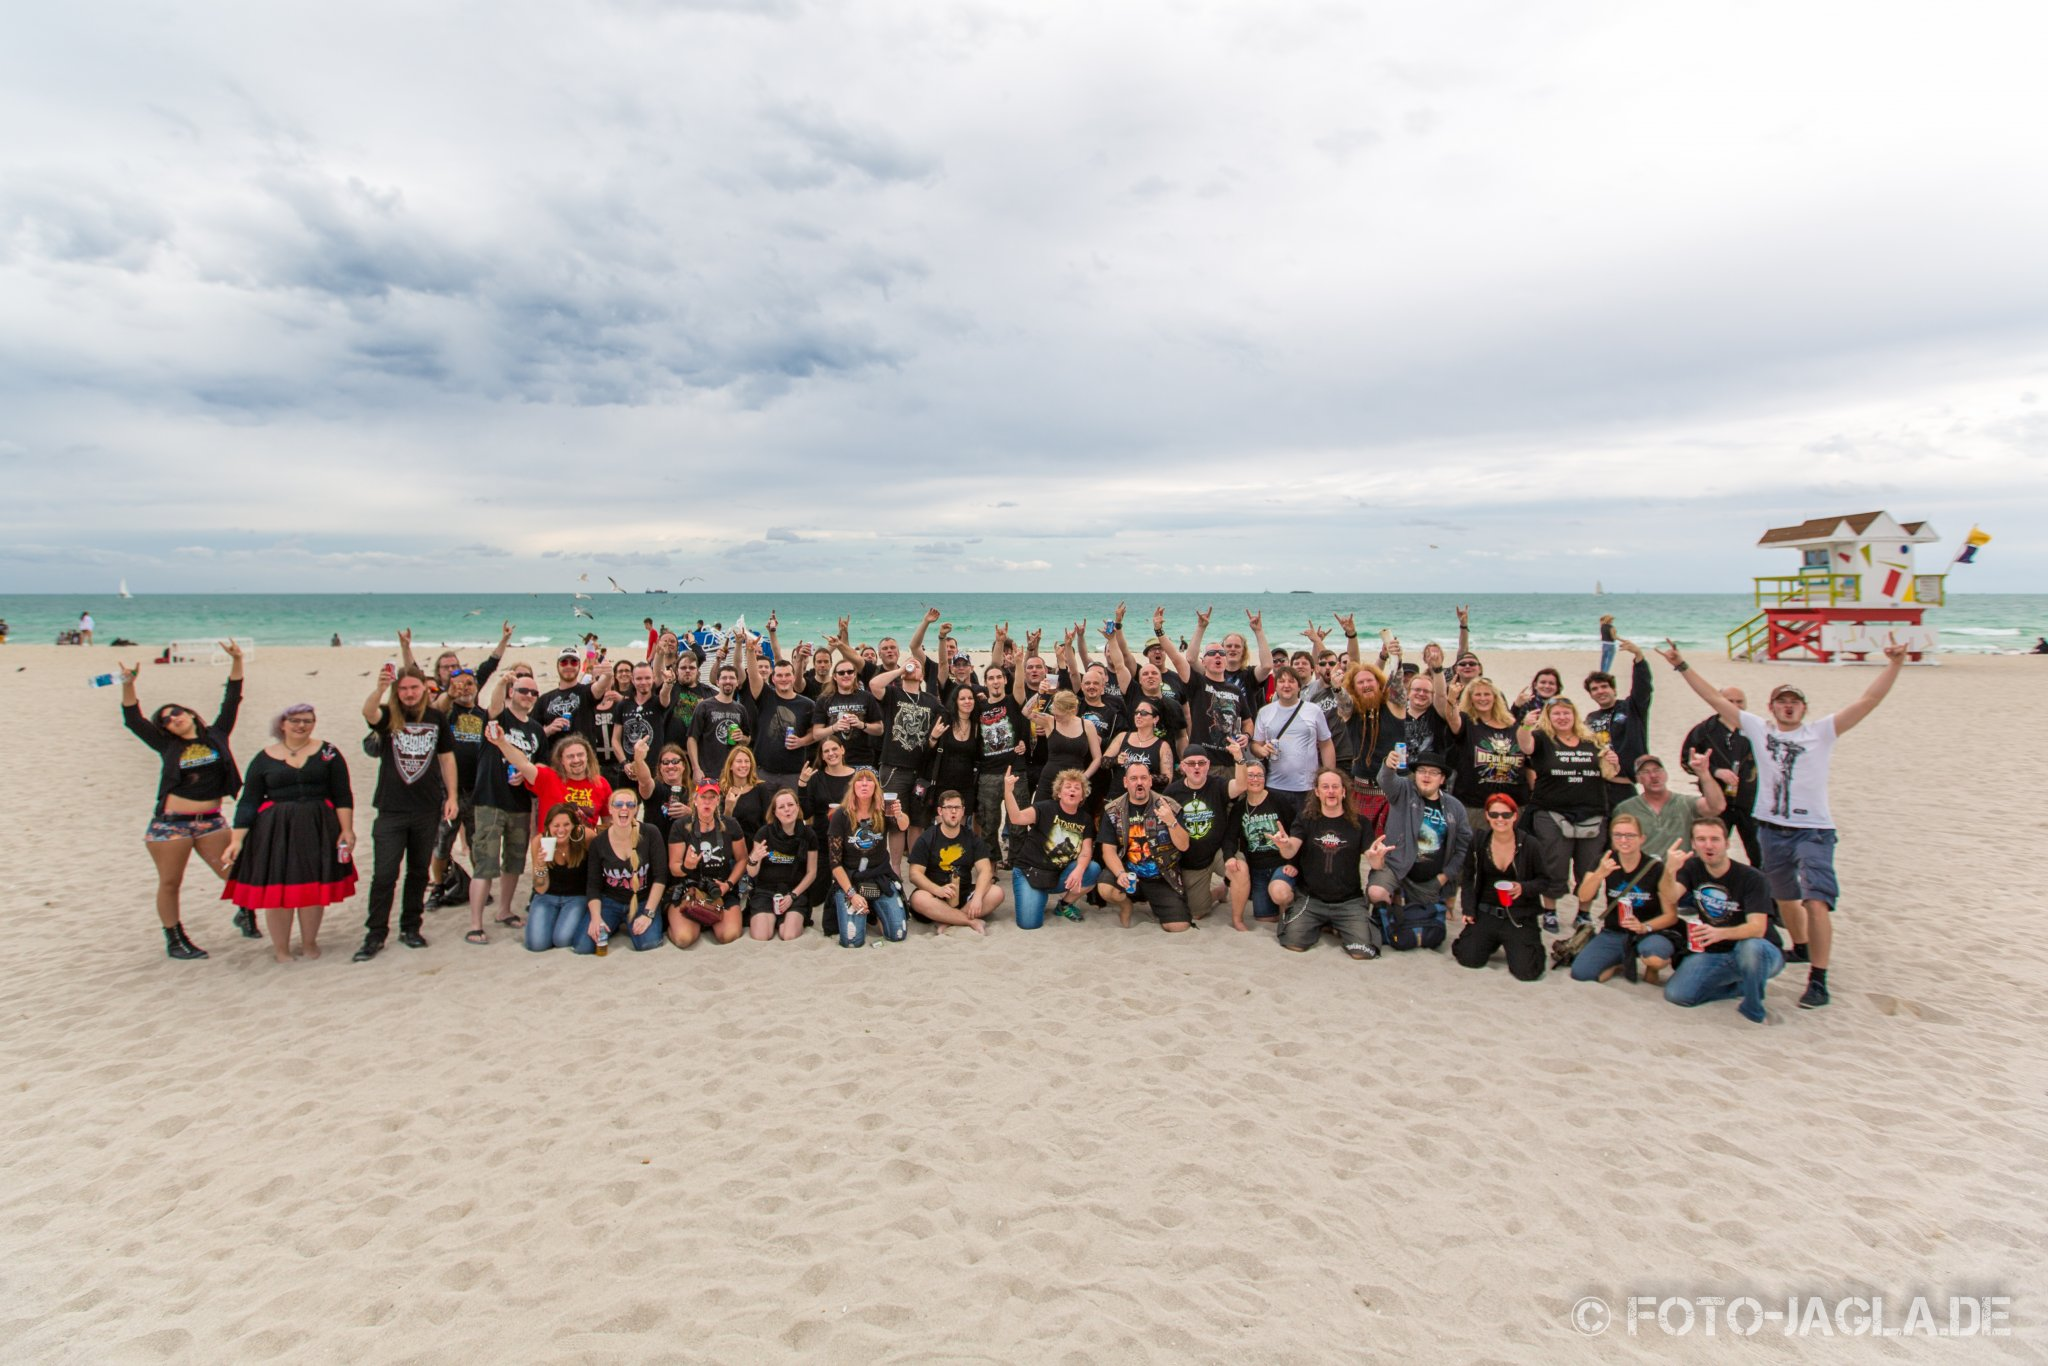 70000 Tons of Metal 2015 ::. Beachparty @ South Beach, Miami